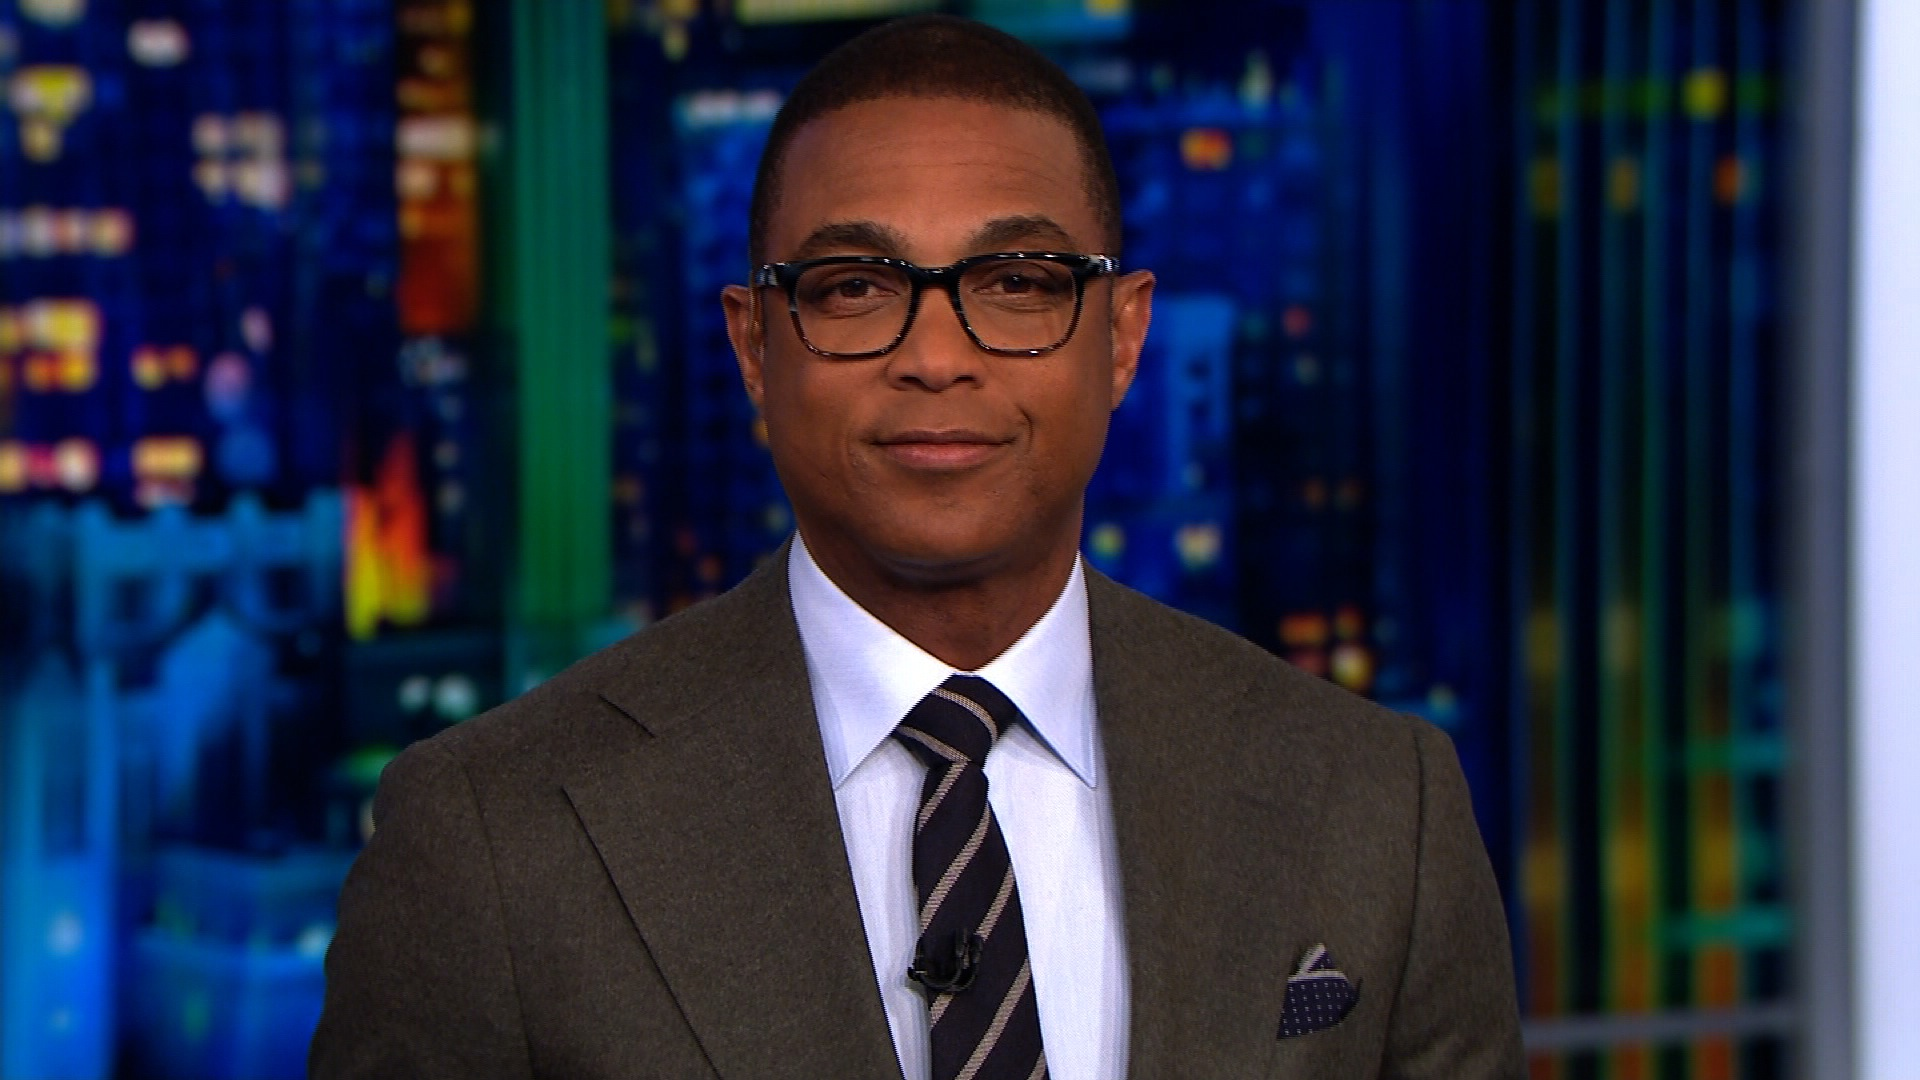 picture Don Lemon says on CNN the biggest terror threat to the US is white men